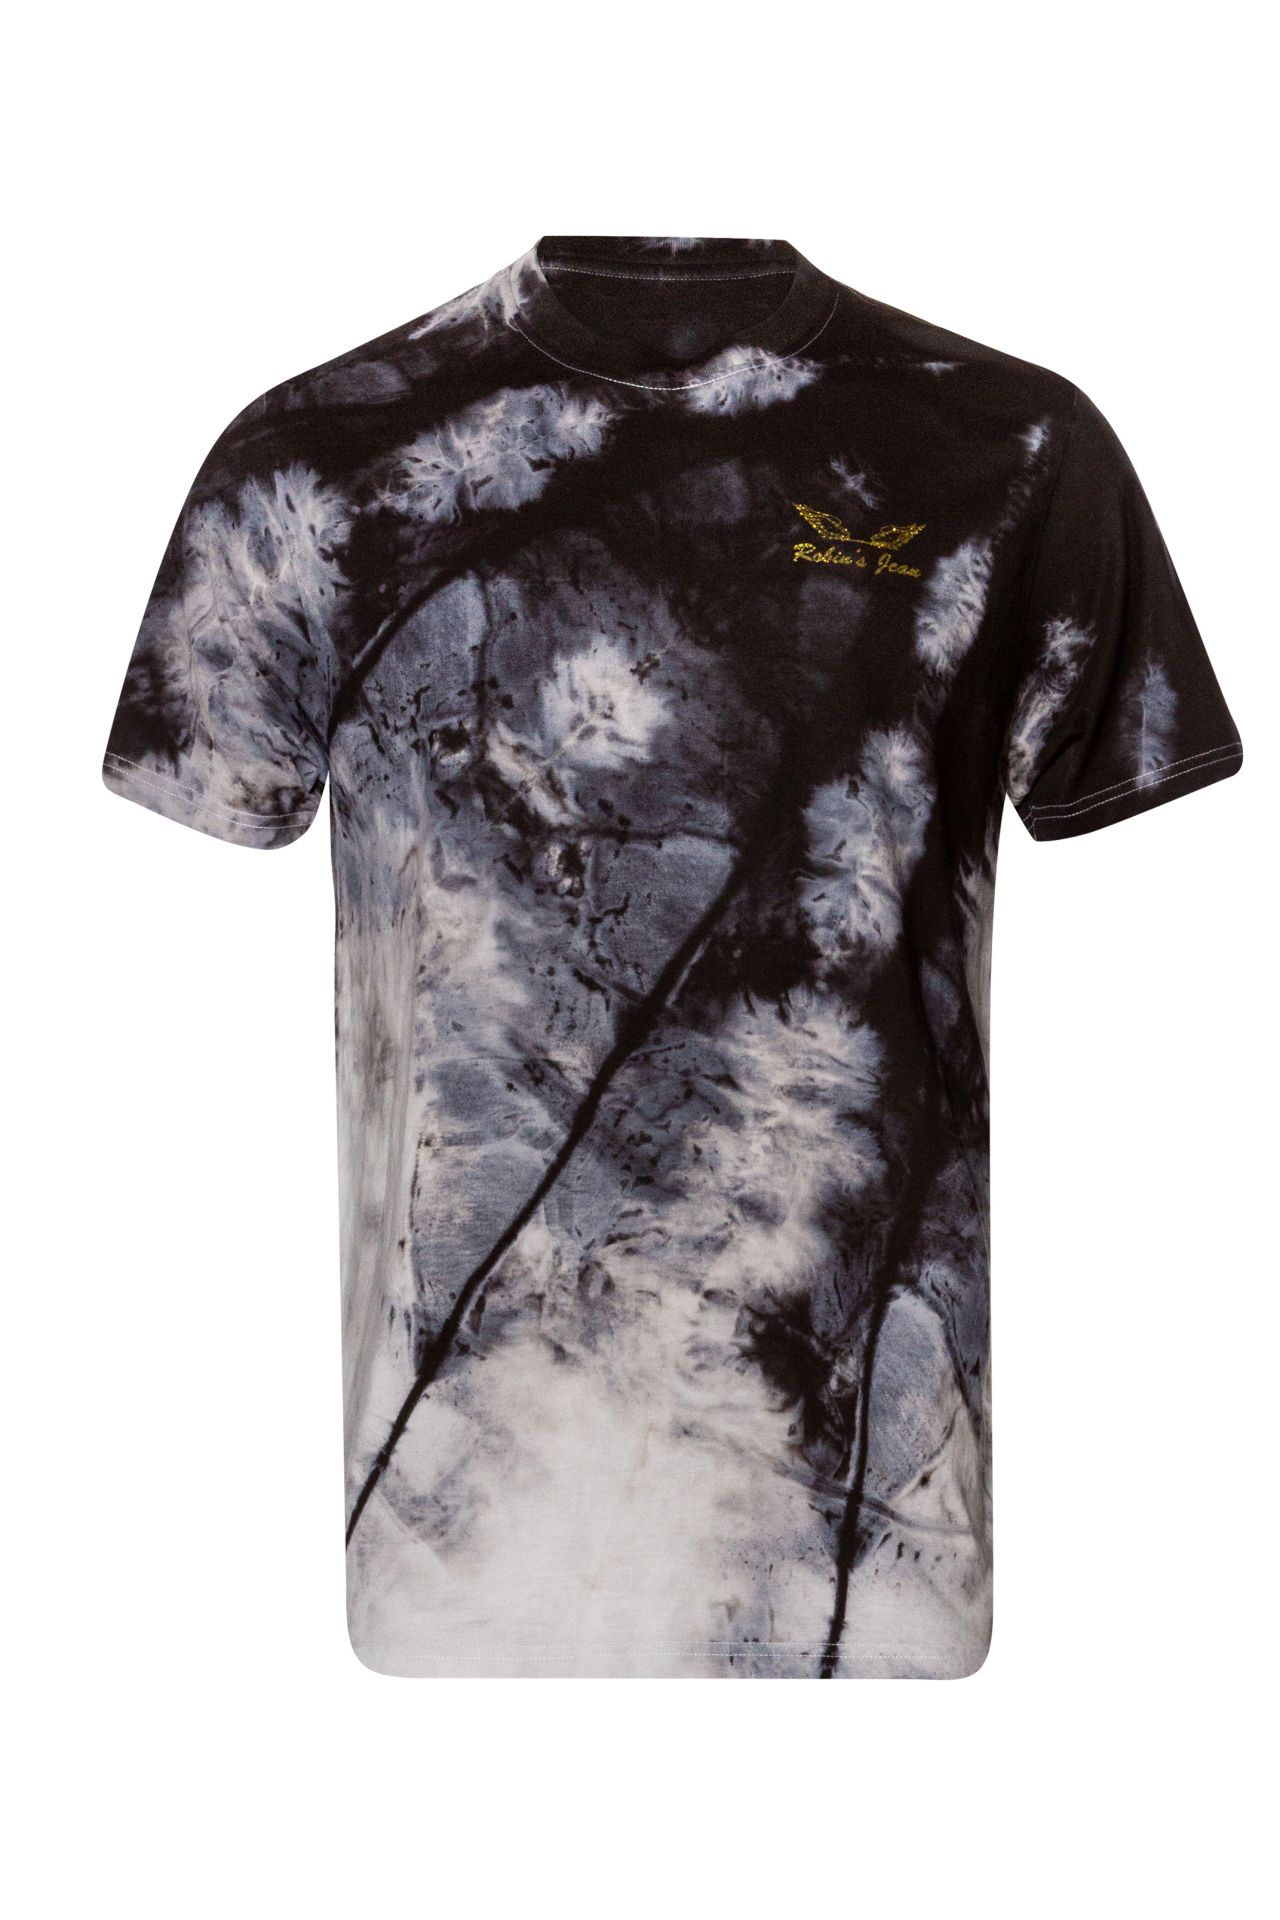 ROBINS GOLD GLITTER WINGS IN TIE DYE BLACK